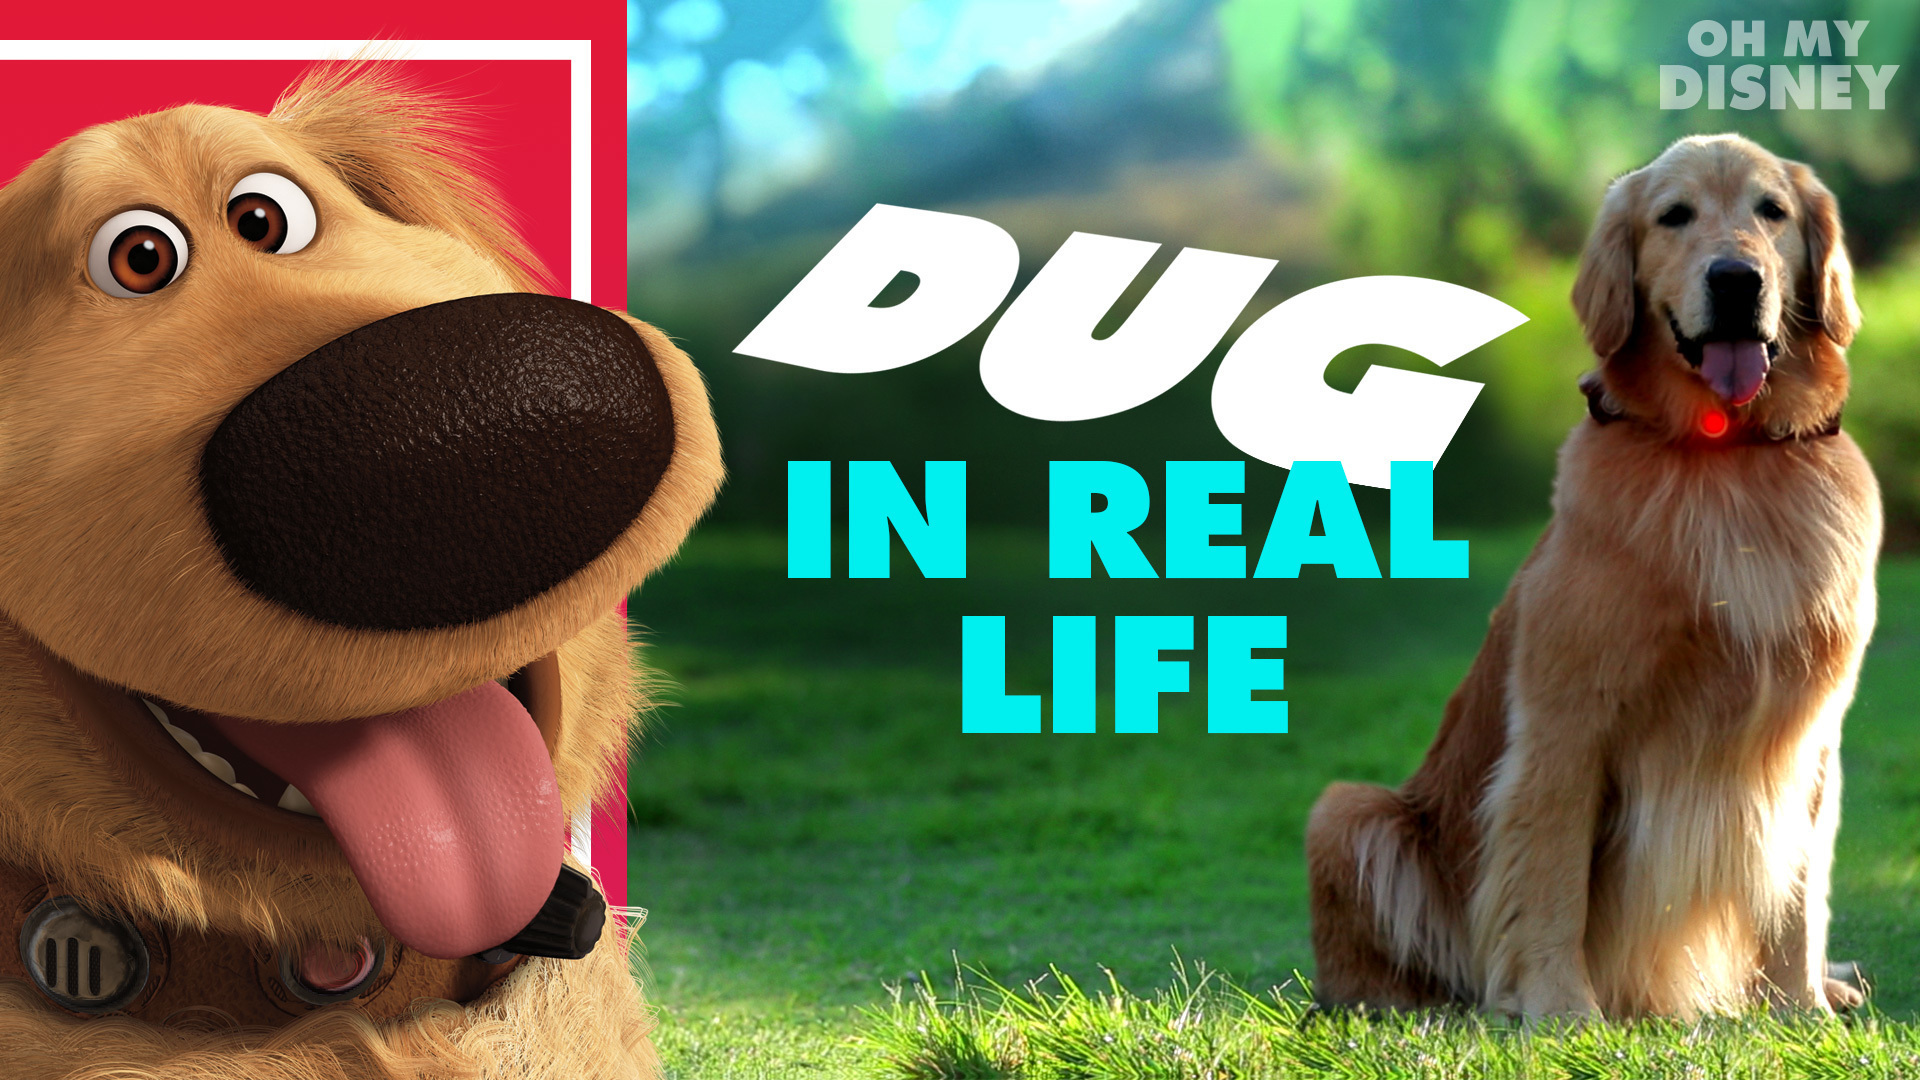 Disney•Pixar's Dug the Talking Dog | Disney In Real Life